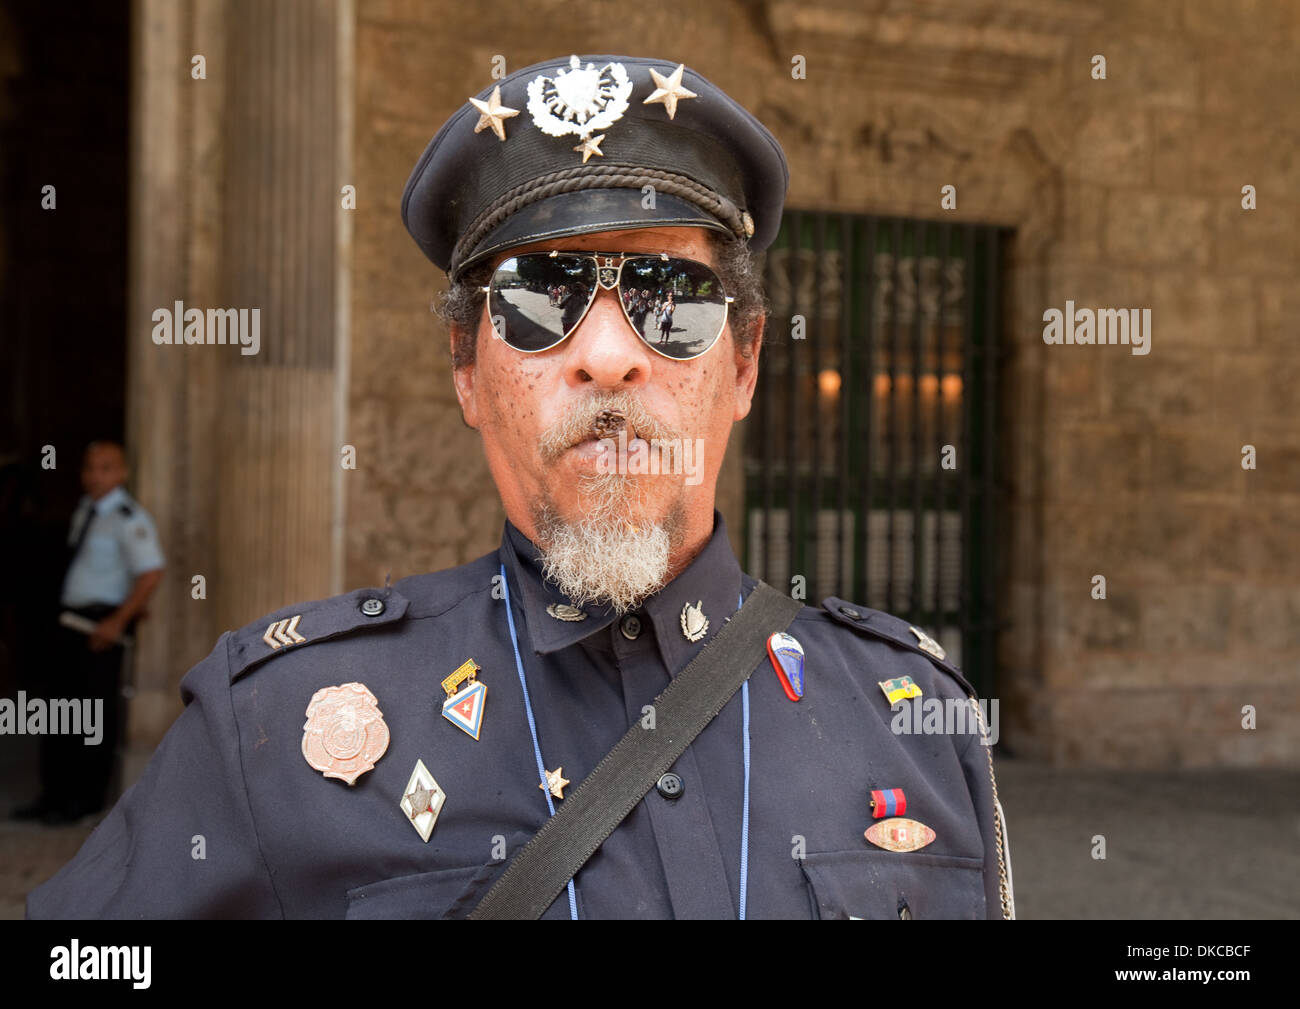 Cuban official guard smoking a cigar, Plaza de Armas square, Havana, Cuba Caribbean - Stock Image